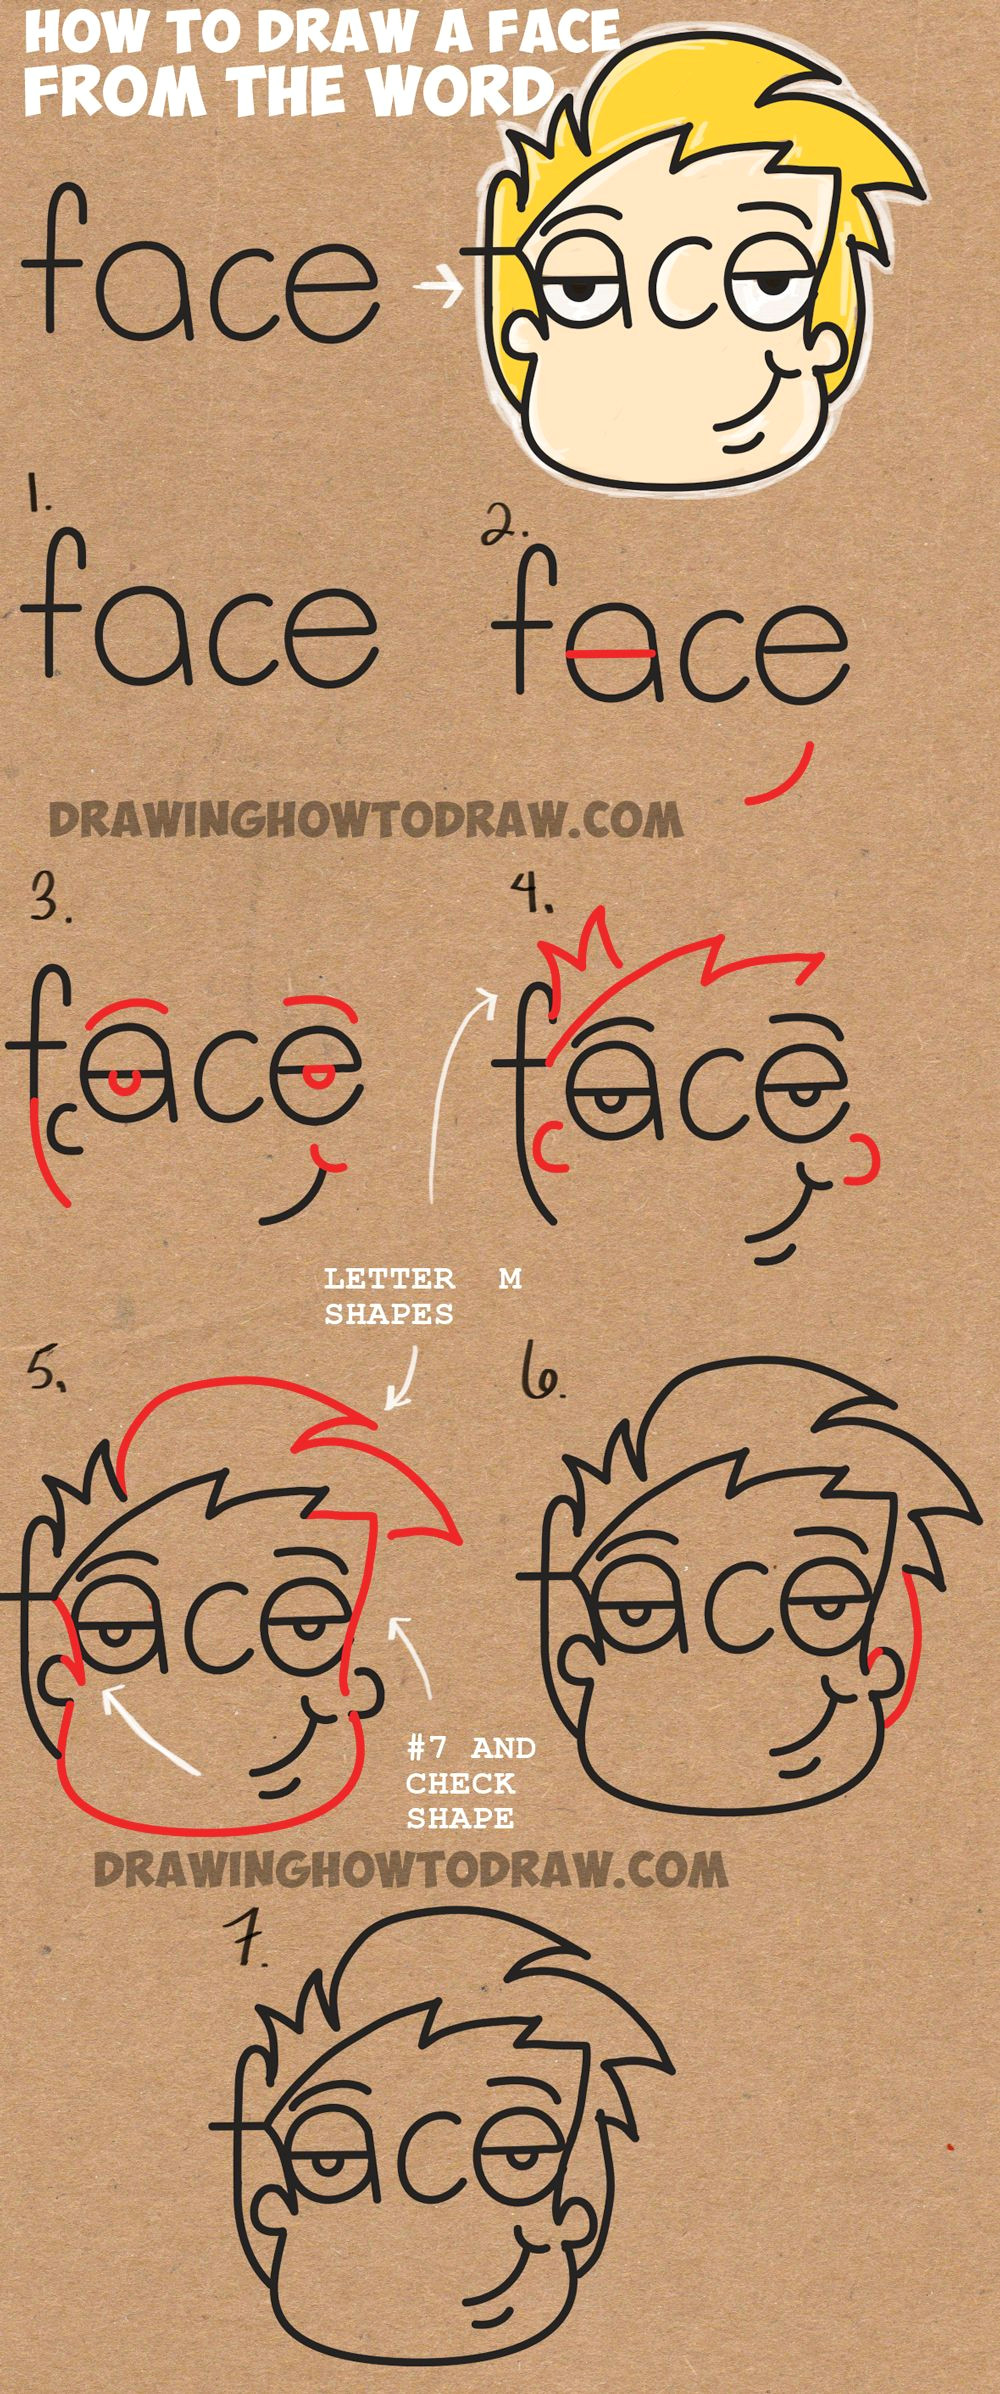 learn how to draw cartoon faces from the word face simple steps drawing lesson for kids